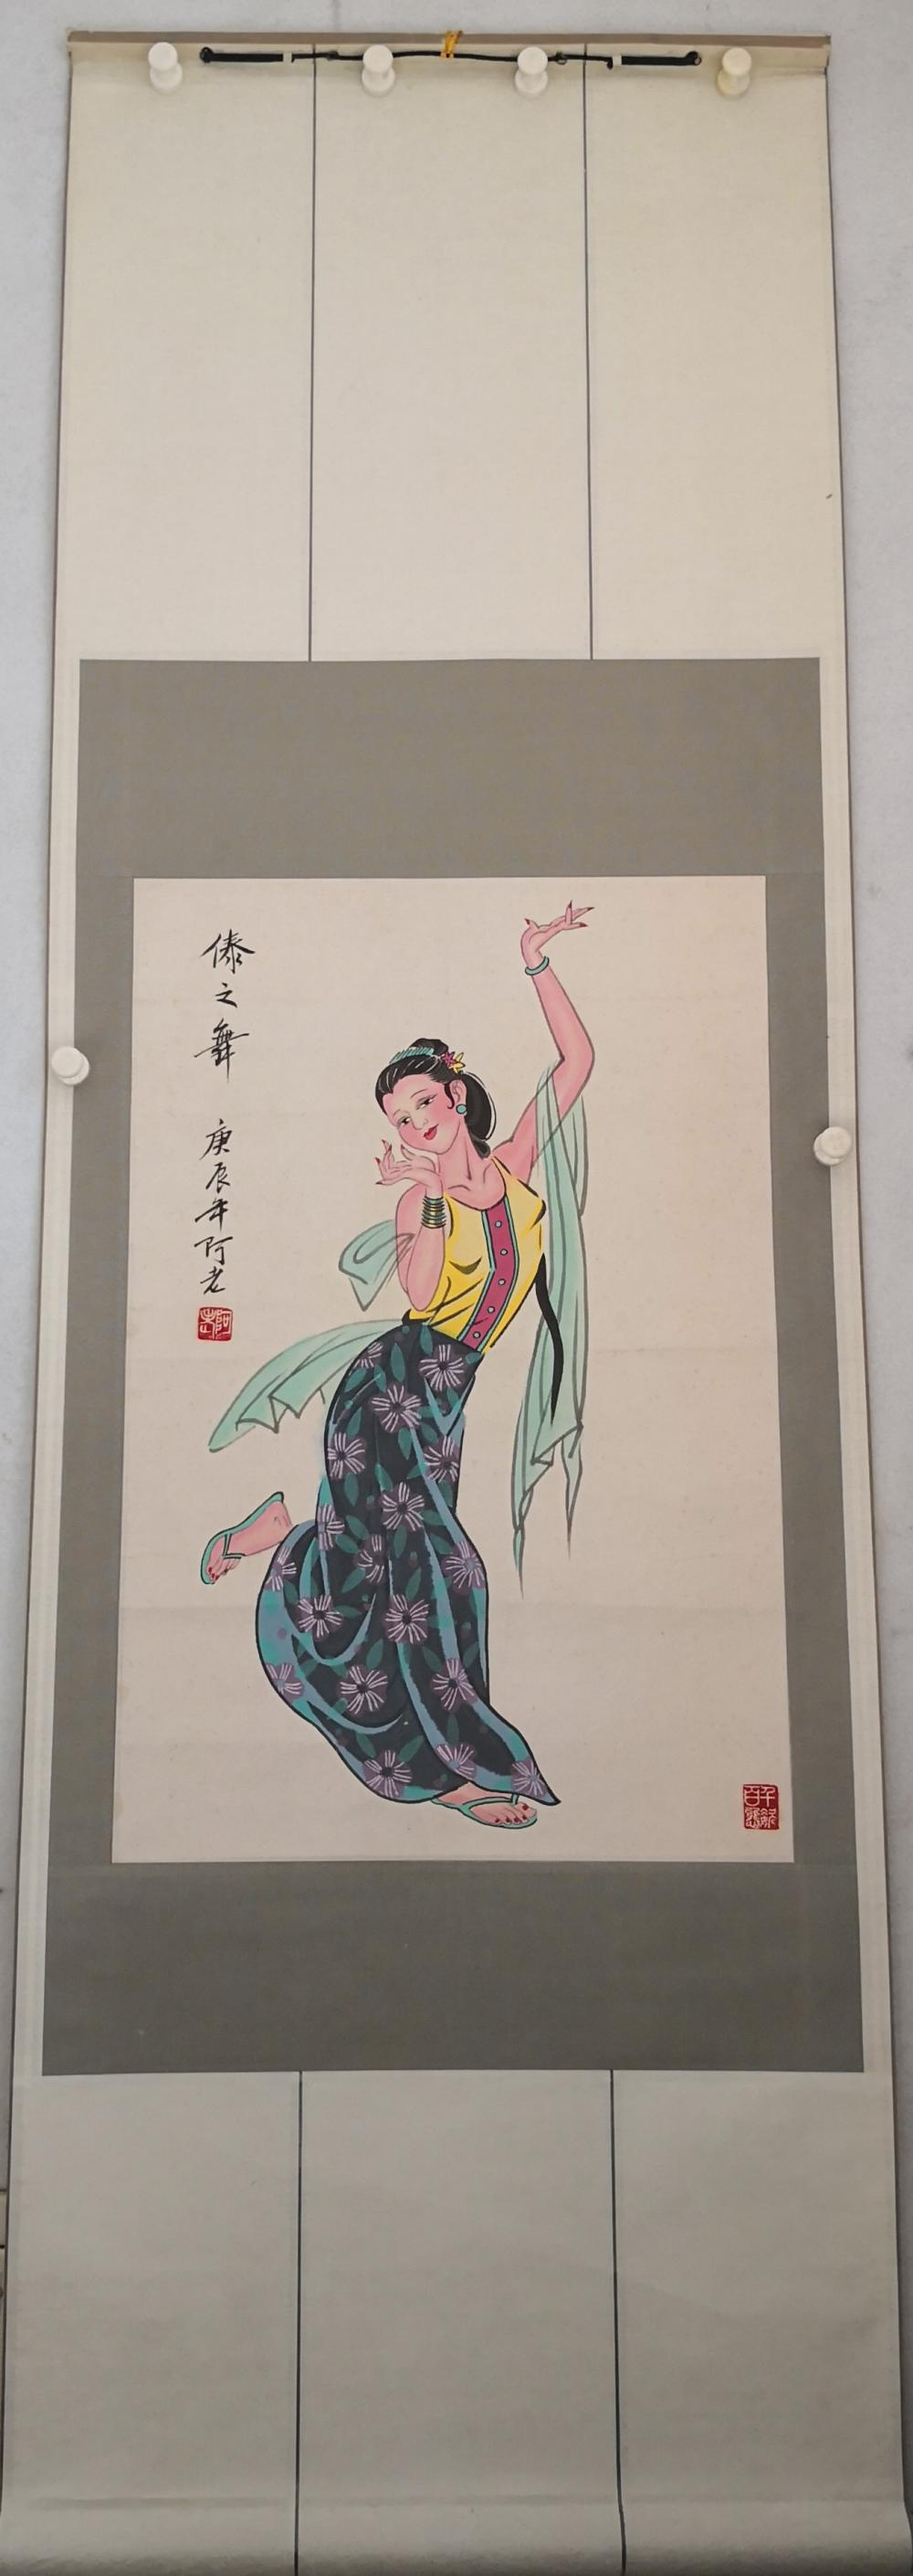 A CHINESE PAINTING BY ALAO